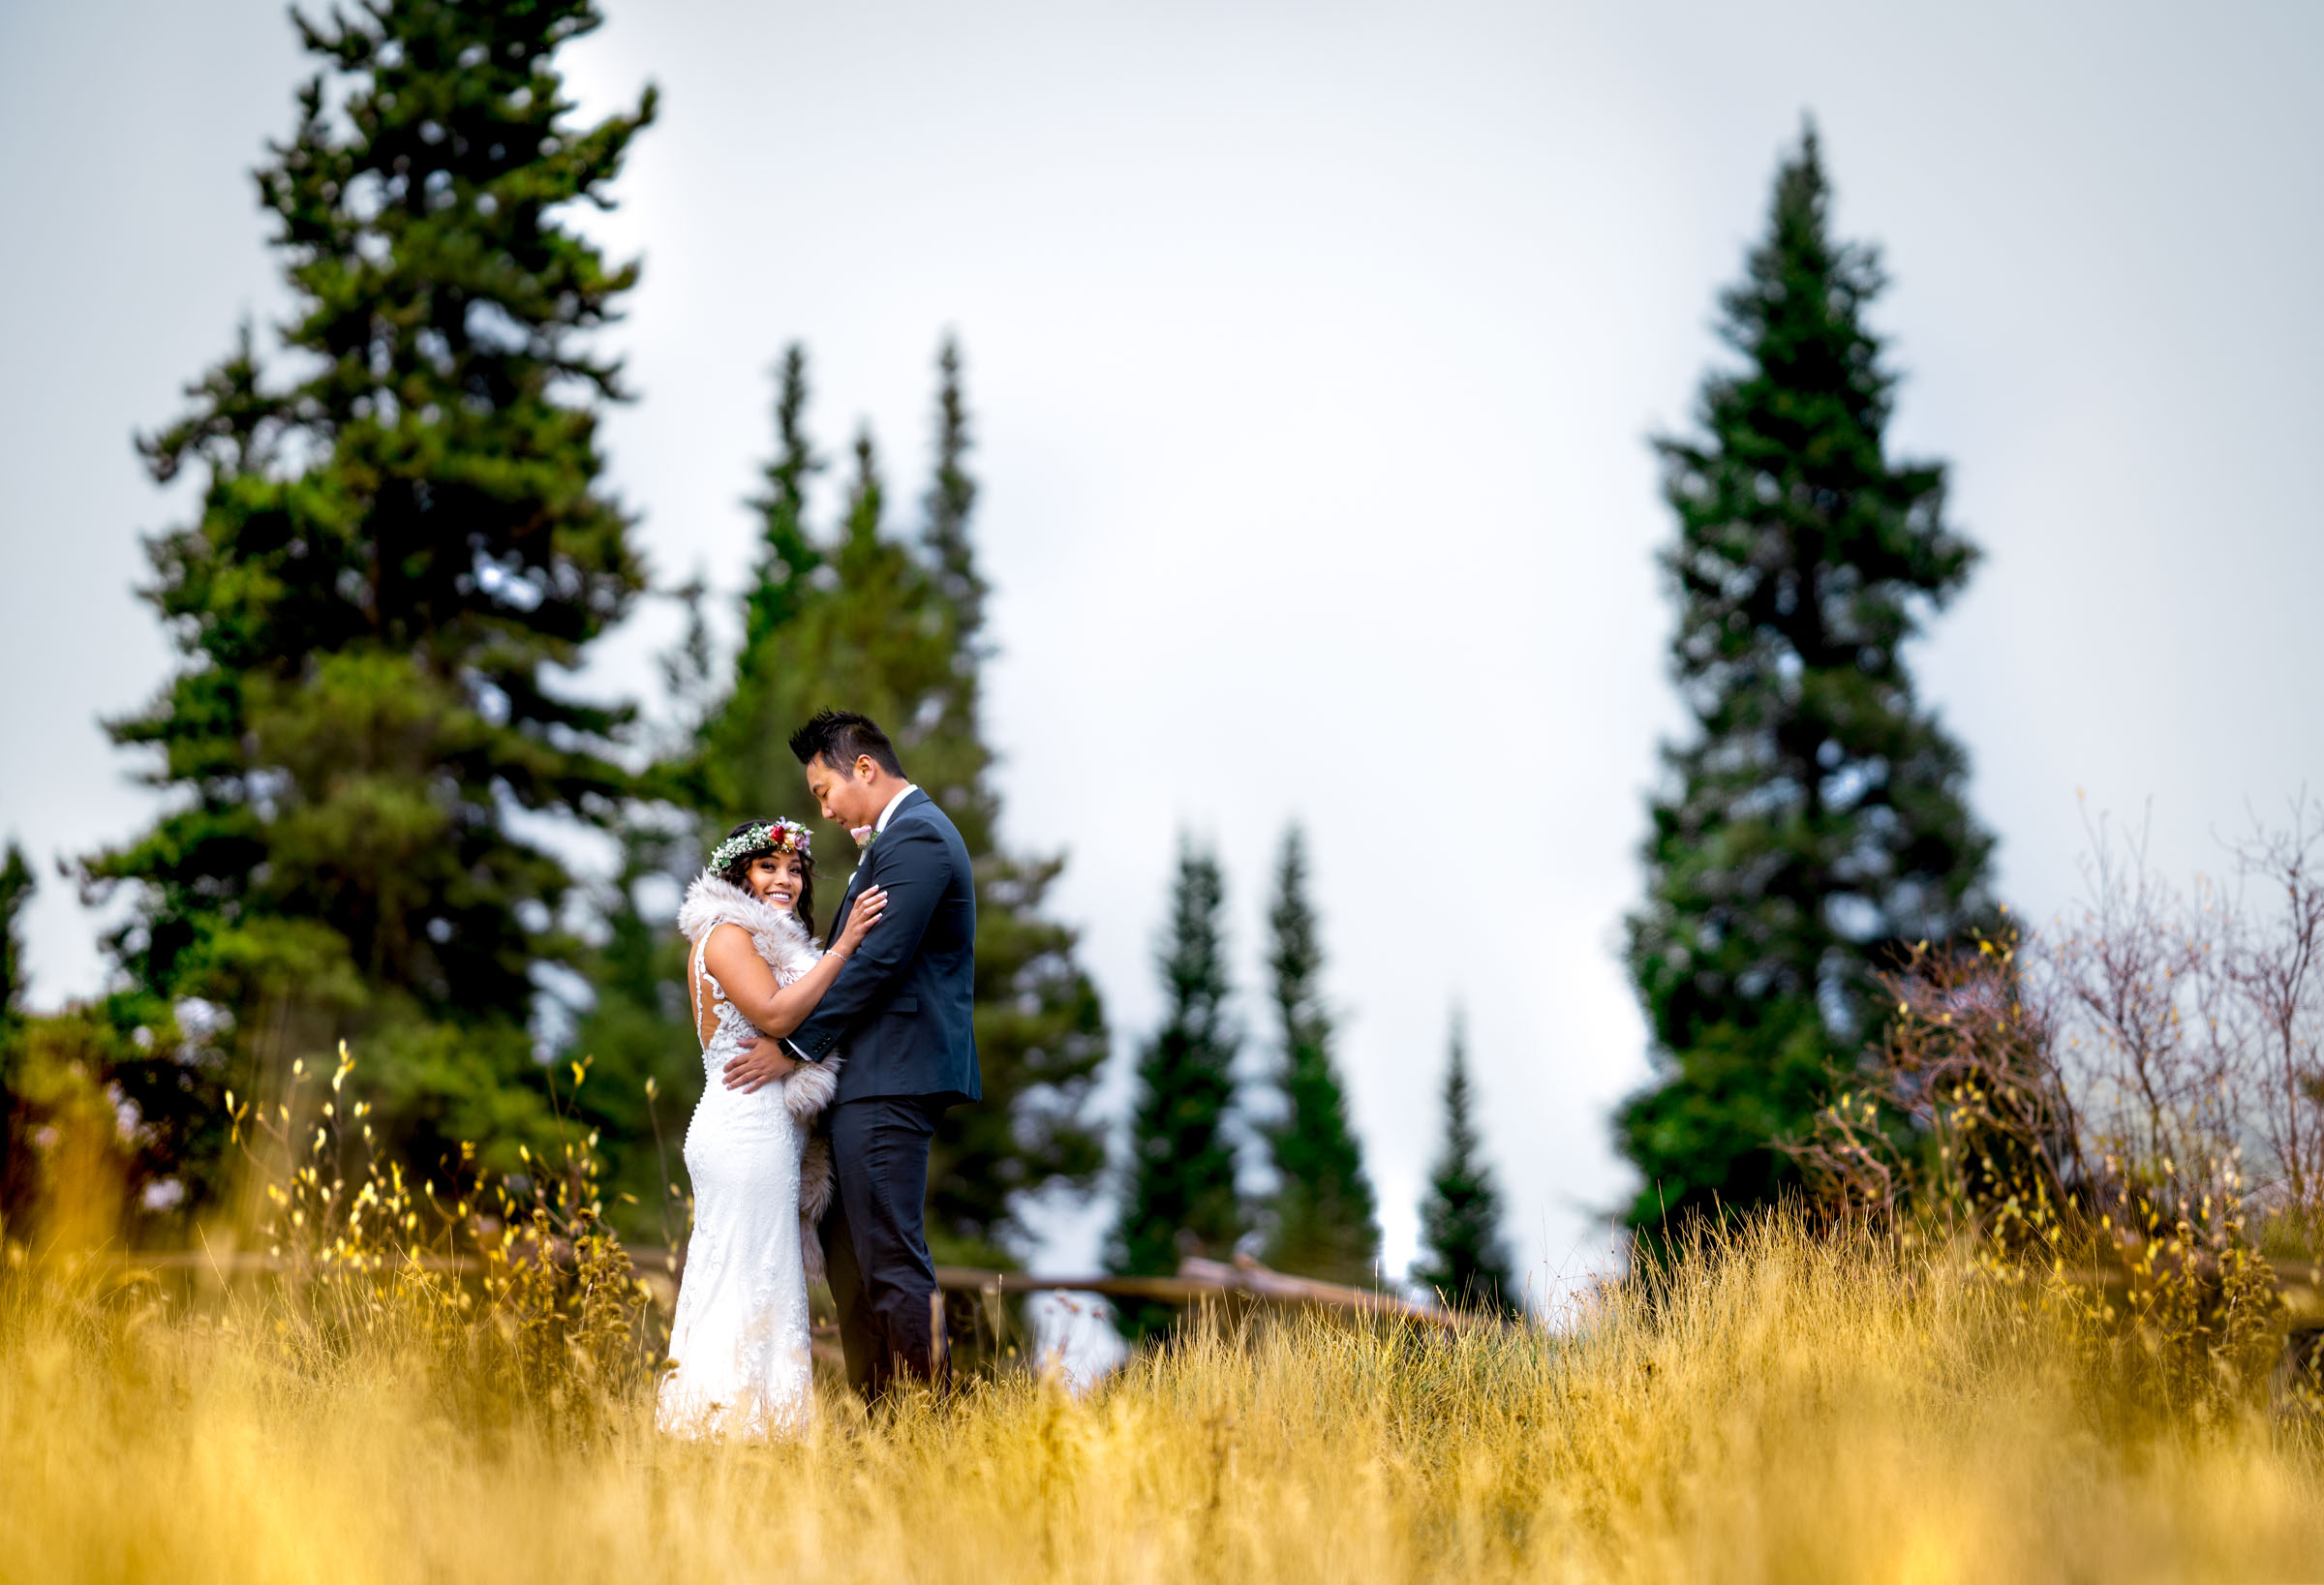 Breckenridge_Colorado_Wedding_DaraLynne_Nathan047.jpg